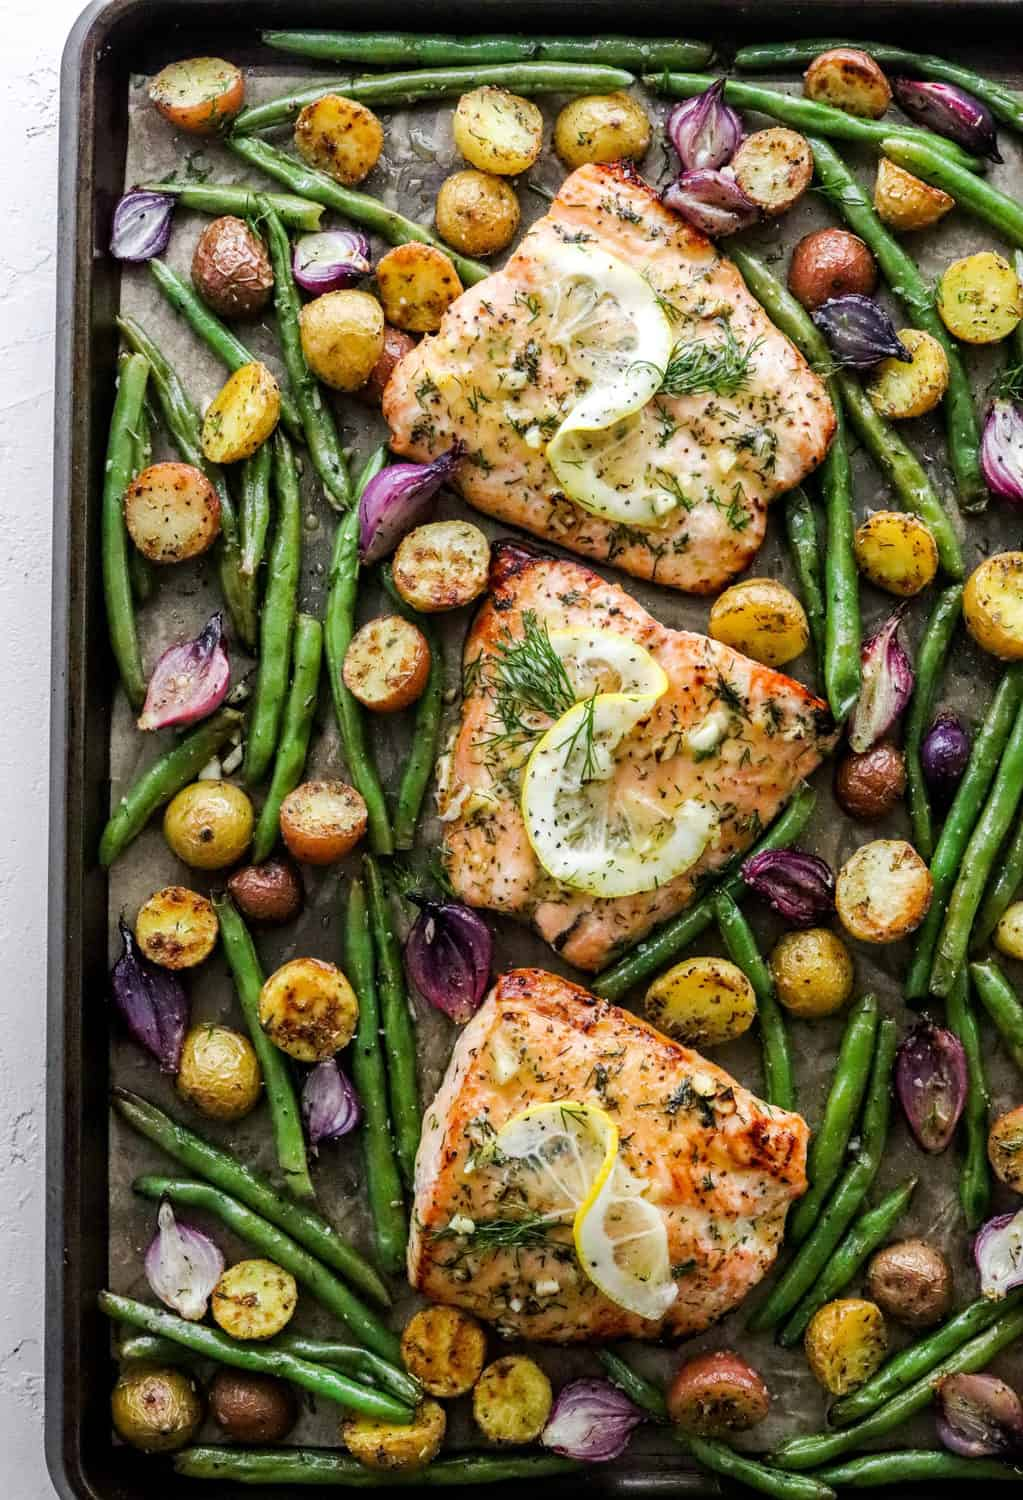 Sheet pan salmon on a baking sheet with green beans, sliced potatoes and purple onion around the salmon.